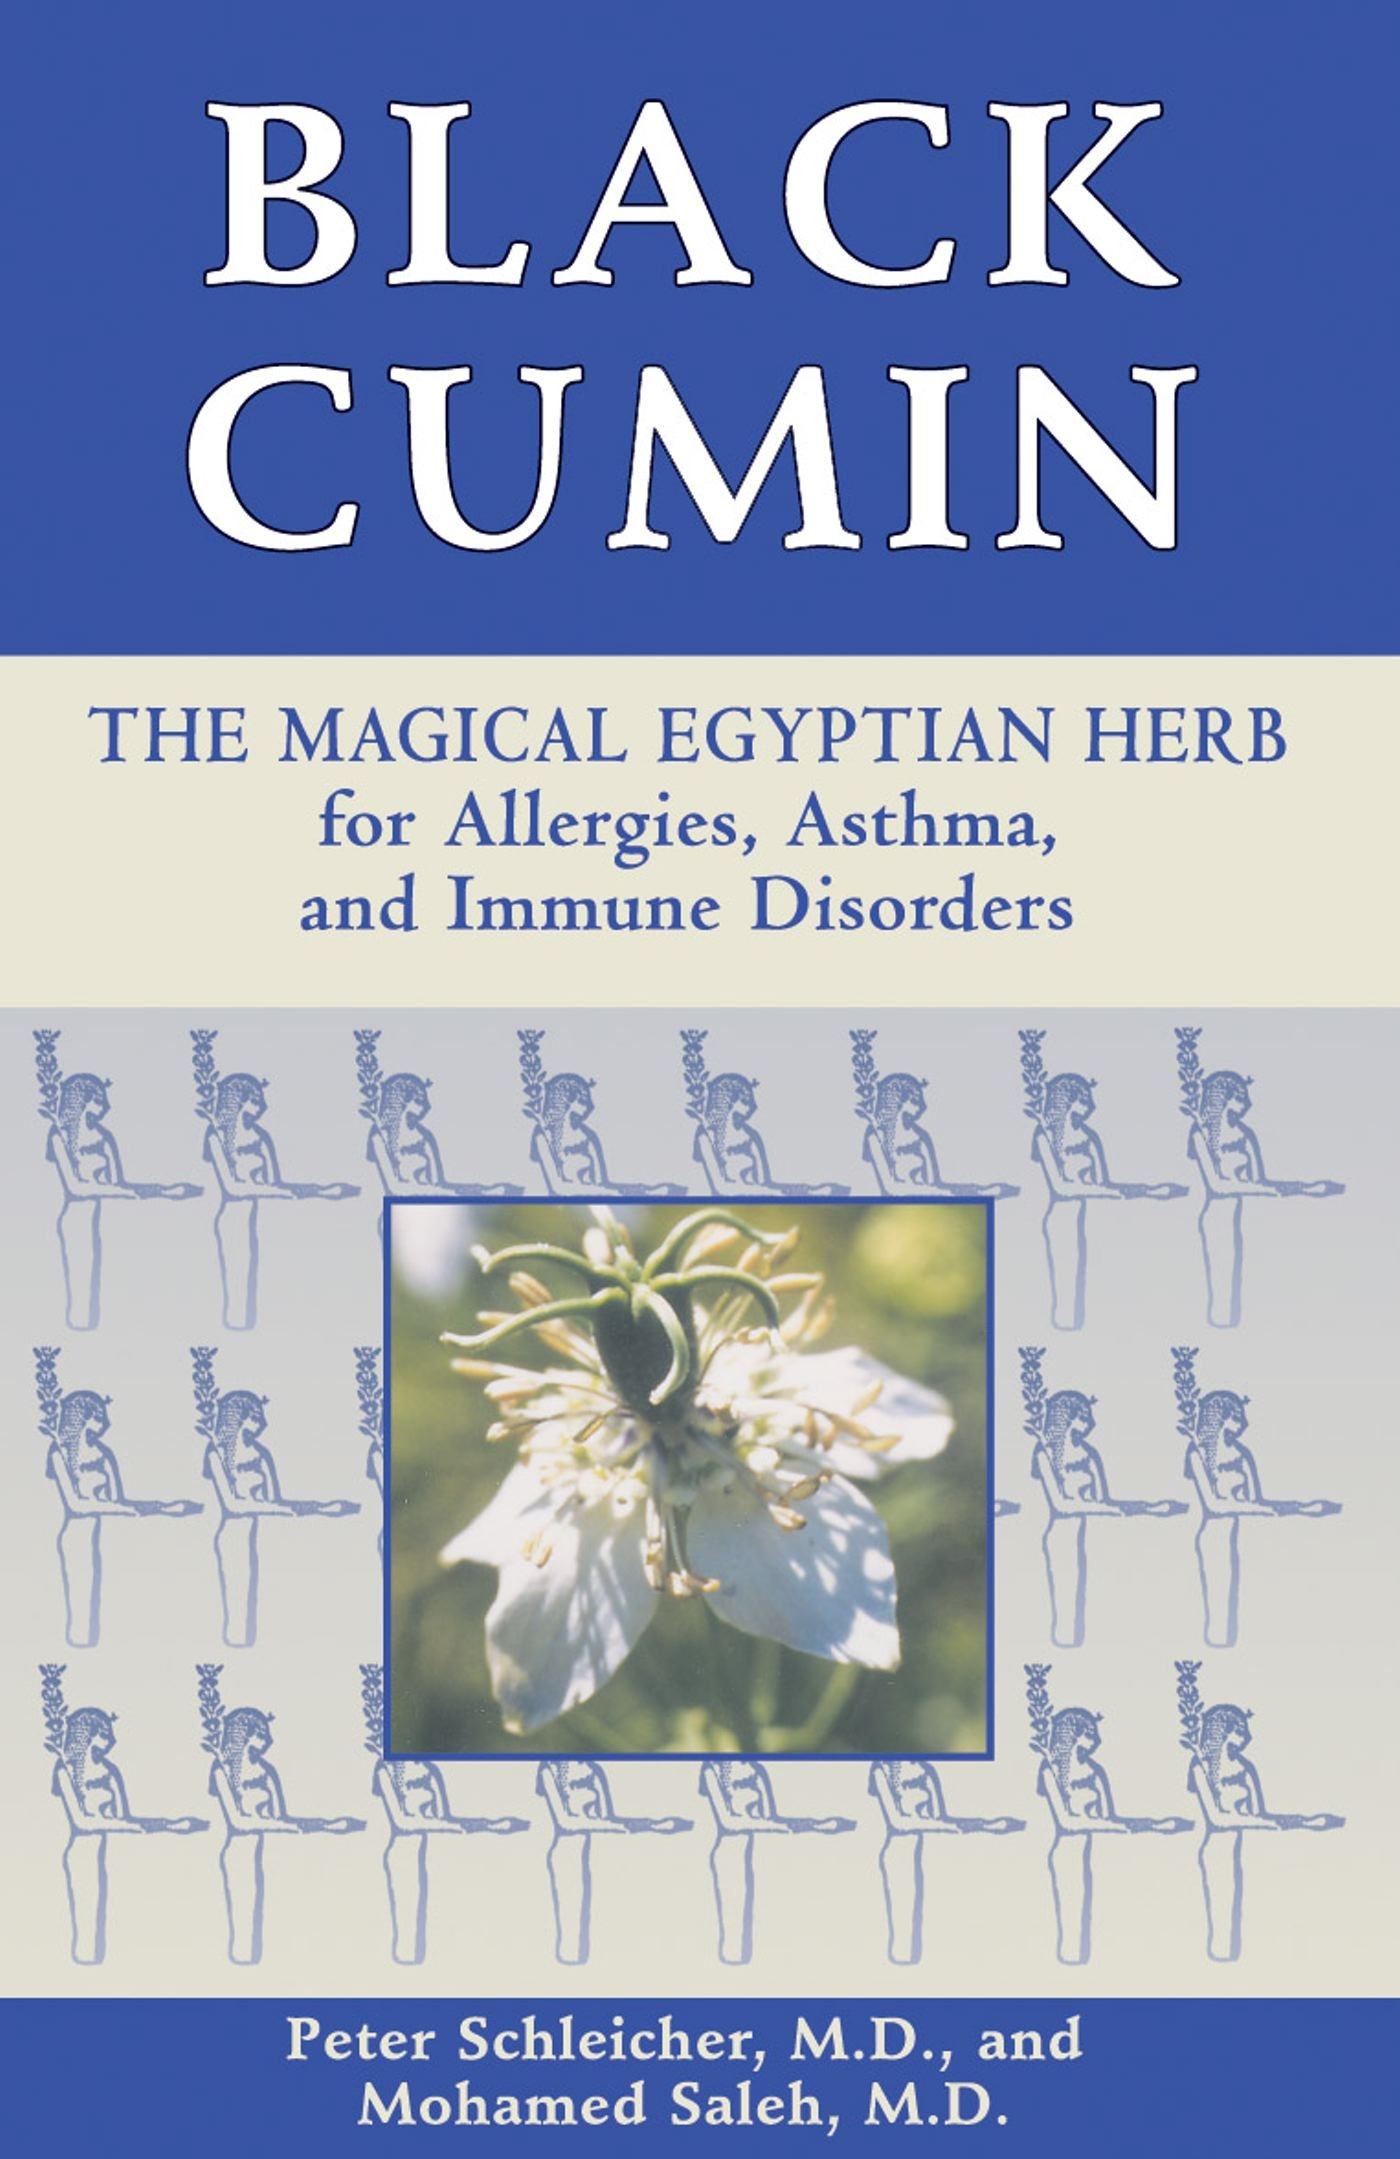 Black Cumin Allergies Conditions Disorders